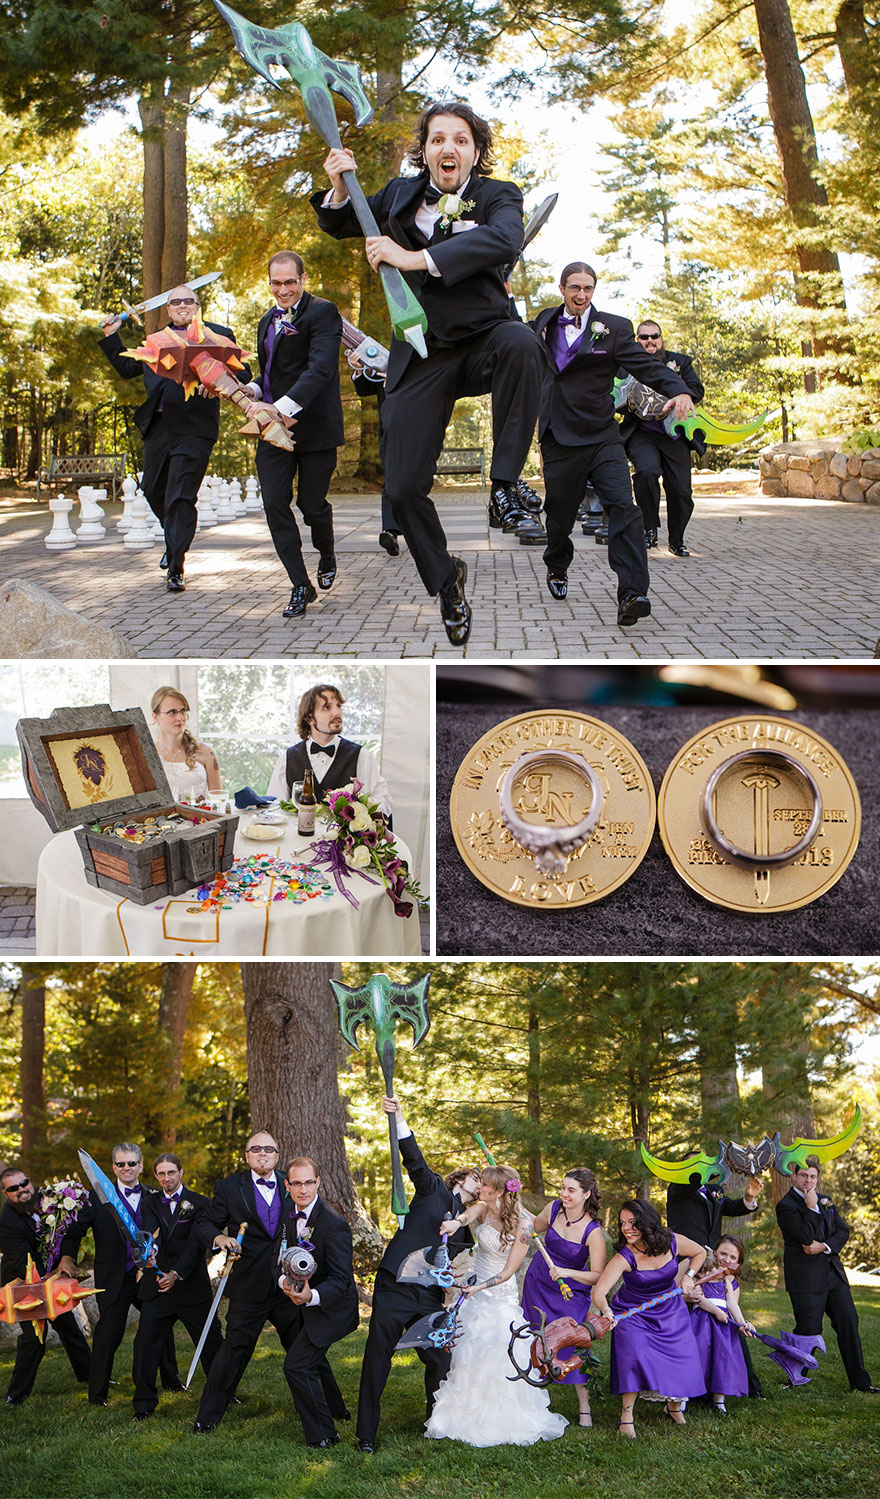 geeky-themed-wedding-11-57441df6837c5__880